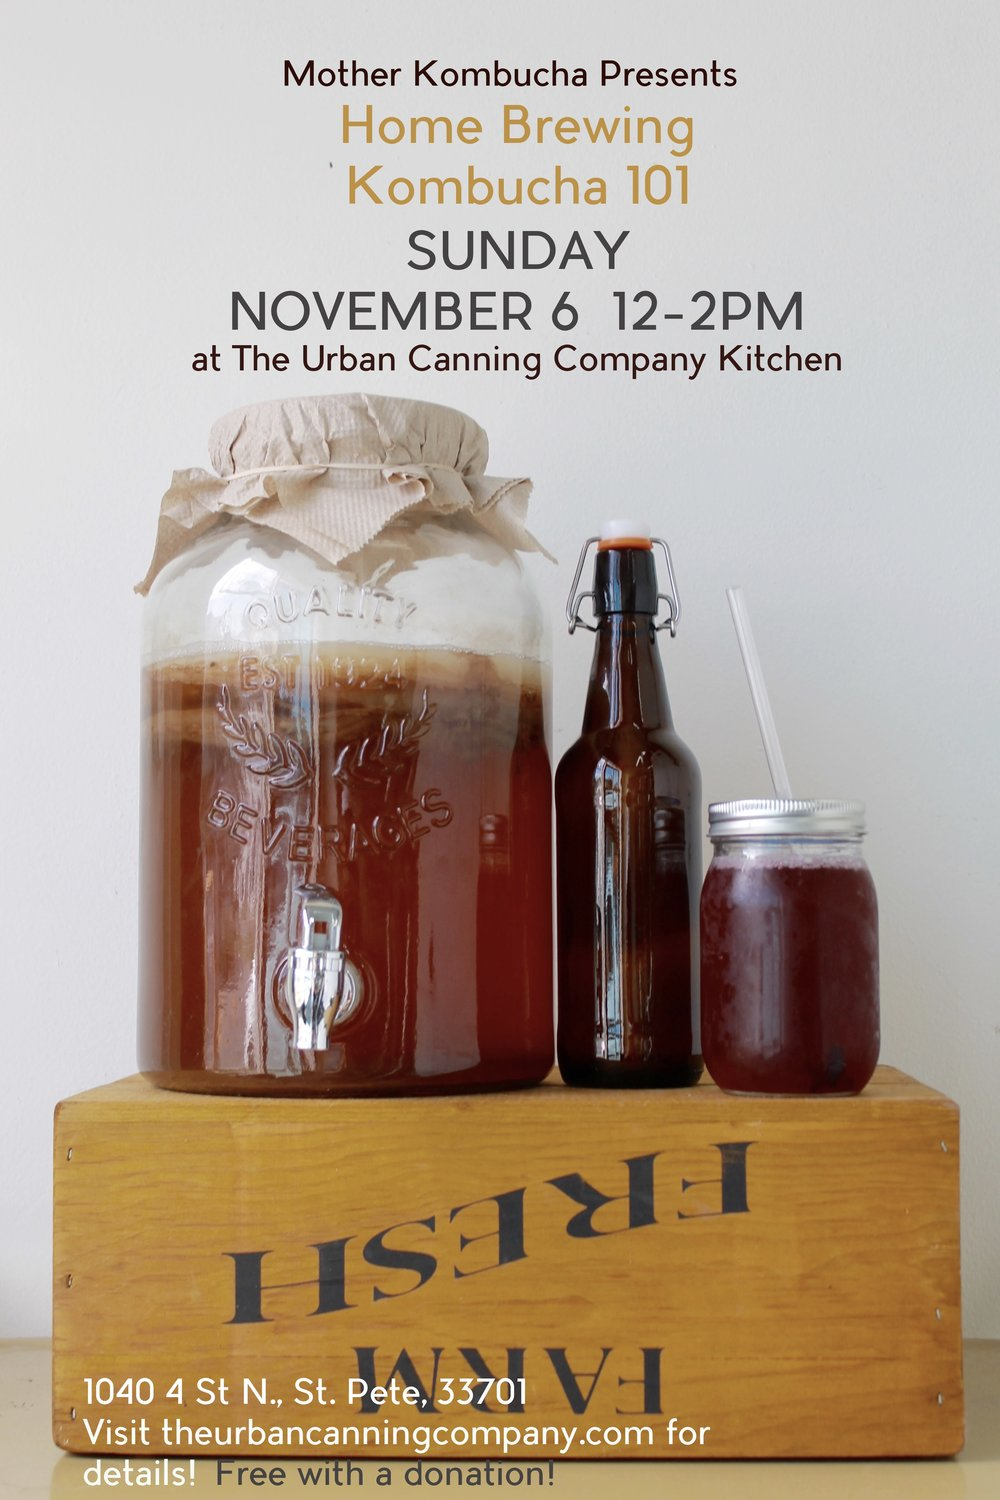 Come join us for this lecture taught by Josh Rumschlag, co -founder of  Mother Kombucha  ! He will be speaking about safe practices for at home brewing, the history of kombucha, how tos, and tips for creating delicious flavor profiles!     This class is free with a donation don't so forget to bring cash! You'll also have to chance to purchase kombucha starter kits from   Mother Kombucha  !